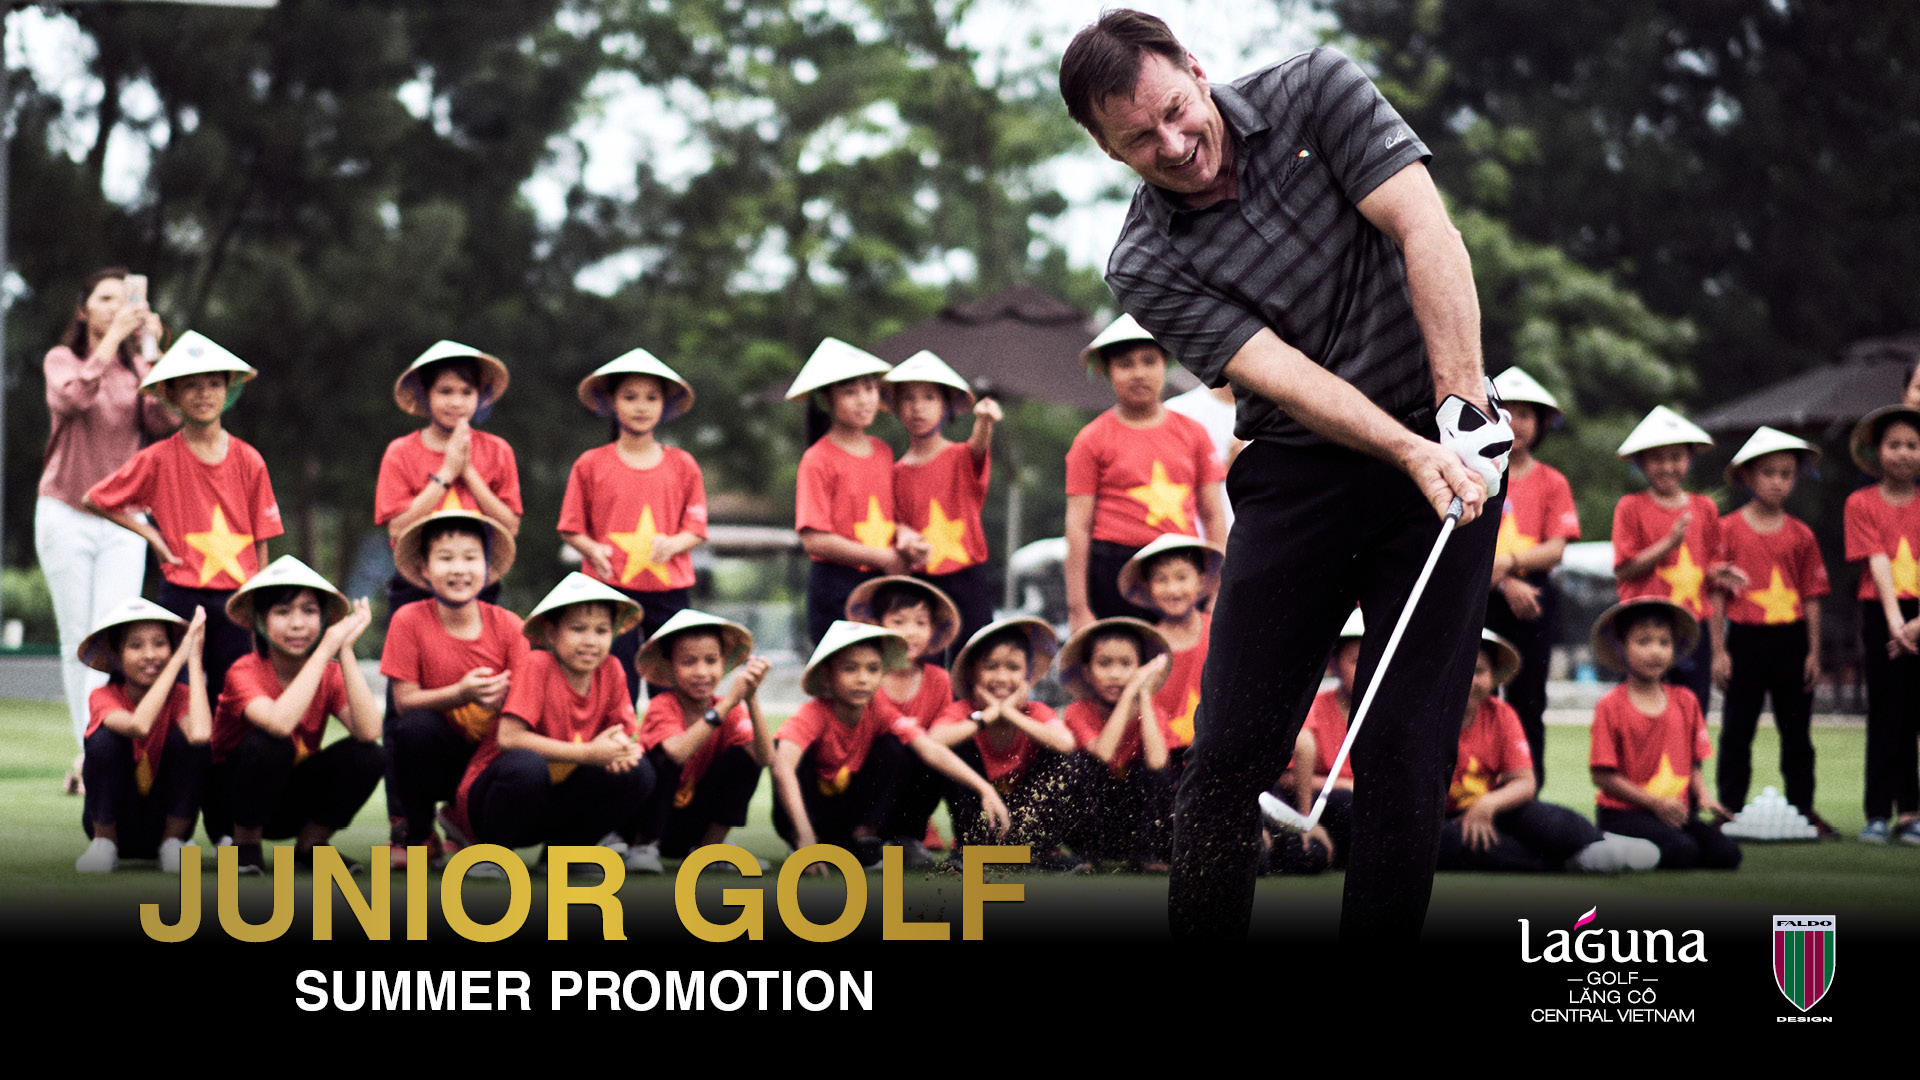 Junior Golf - Summer Promotion 2018